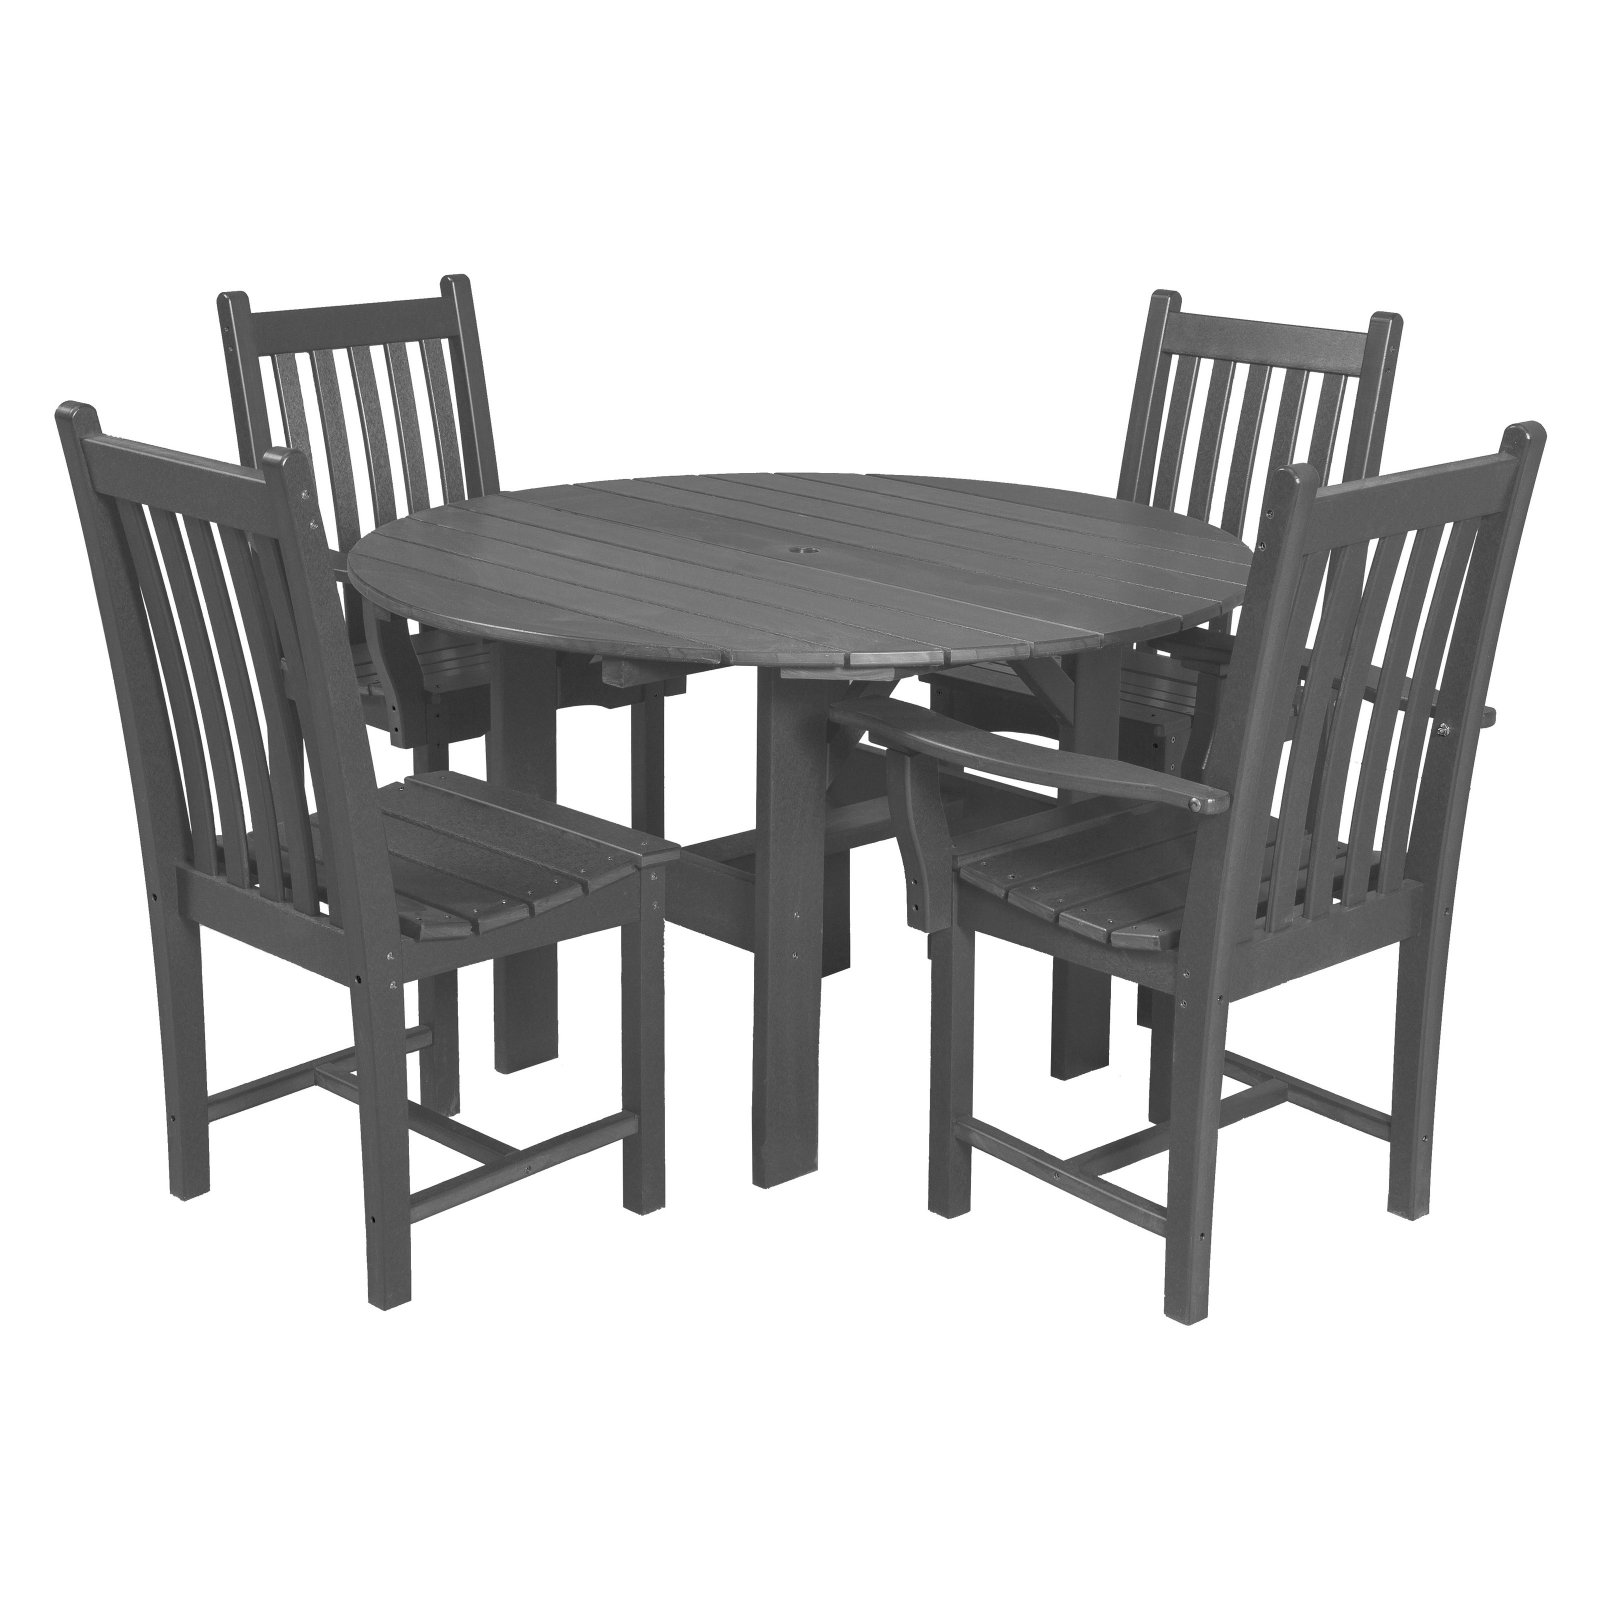 Little Cottage Classic Recycled Plastic 5 Piece Round Patio Dining Room Set by Little Cottage Co.